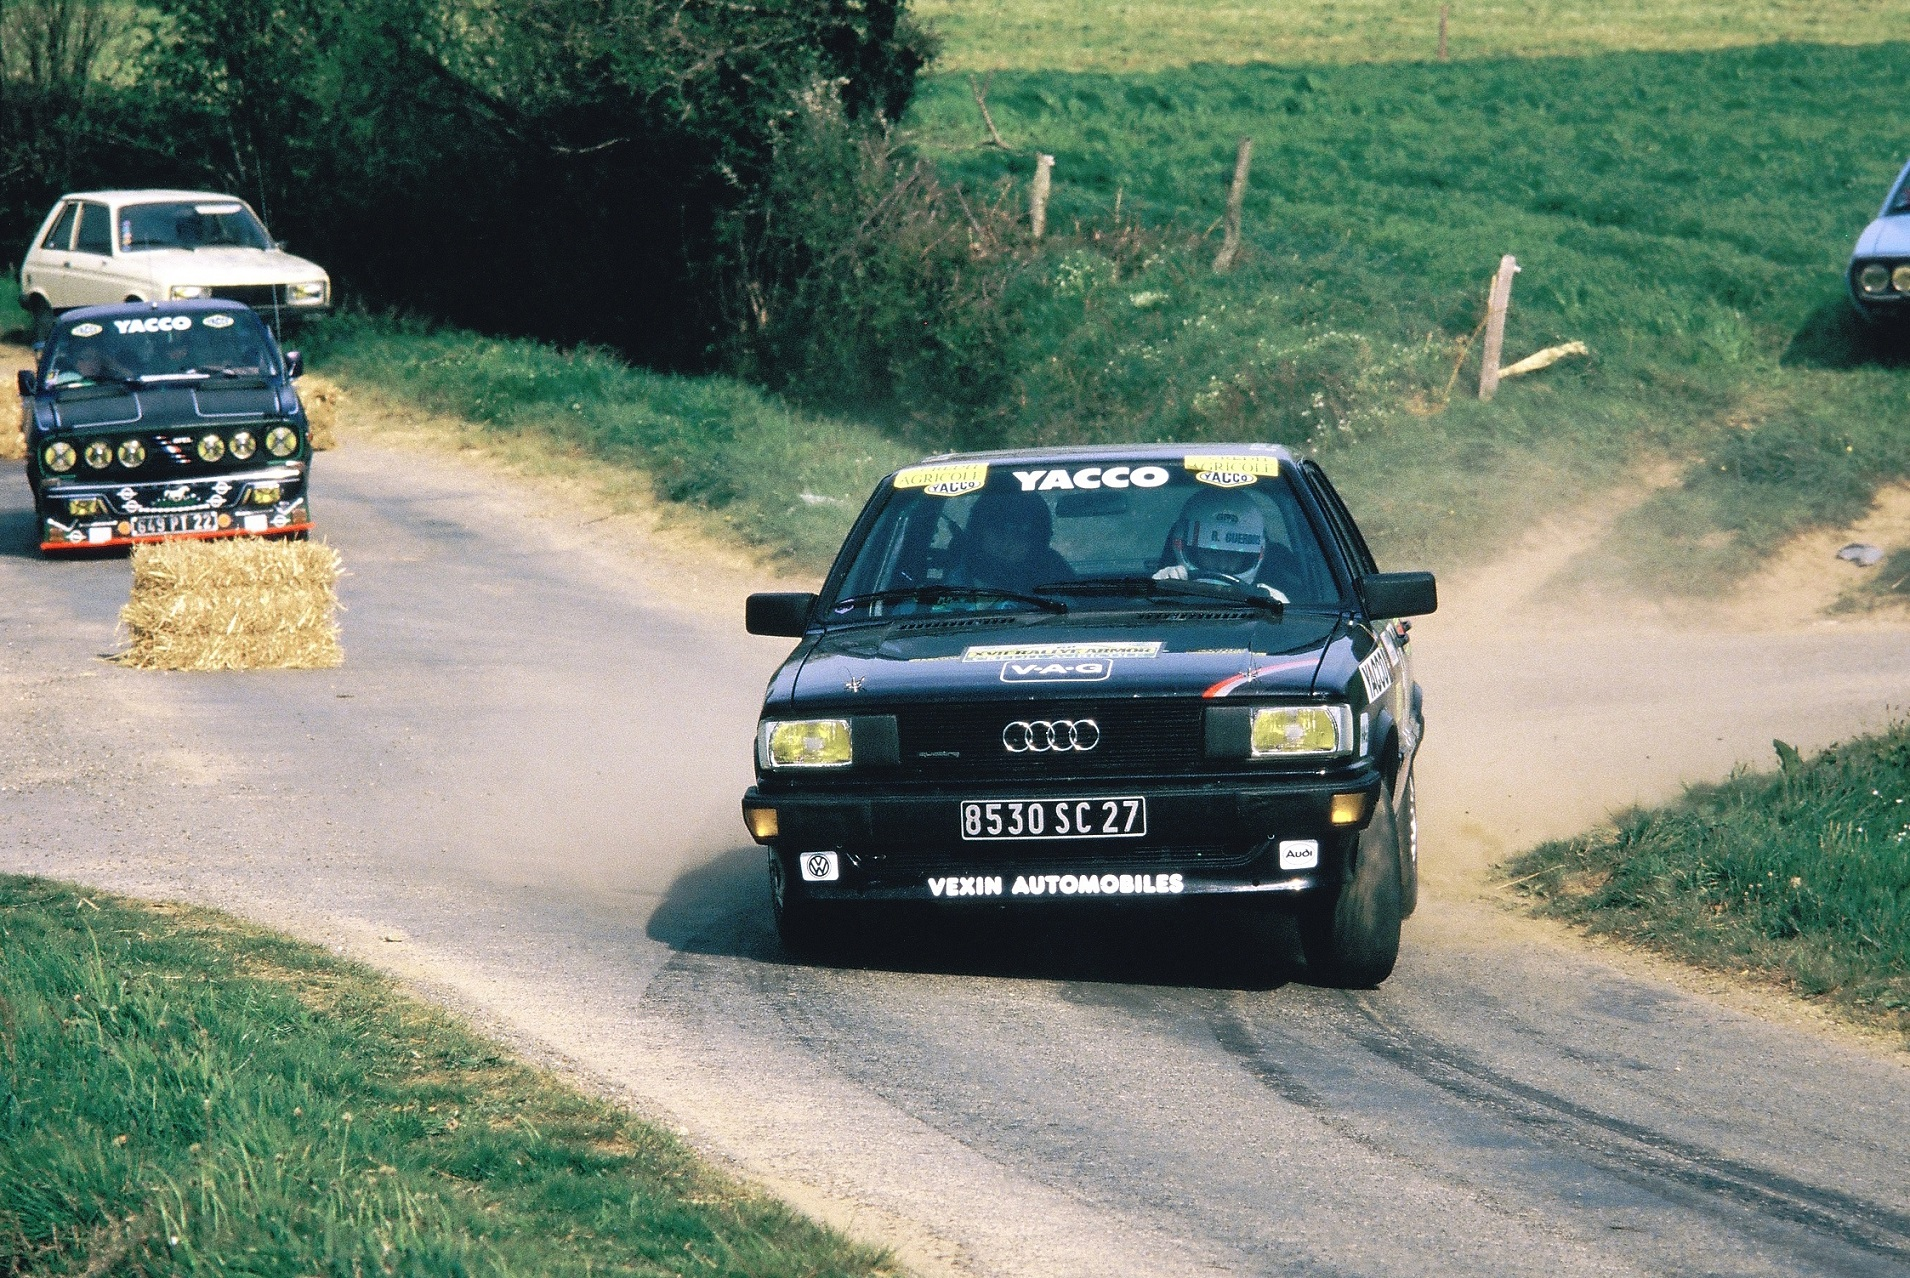 Guerbois - Audi 80 Quattro Groupe N - 1984 - Rallye Armor - photo Thierry Le Bras